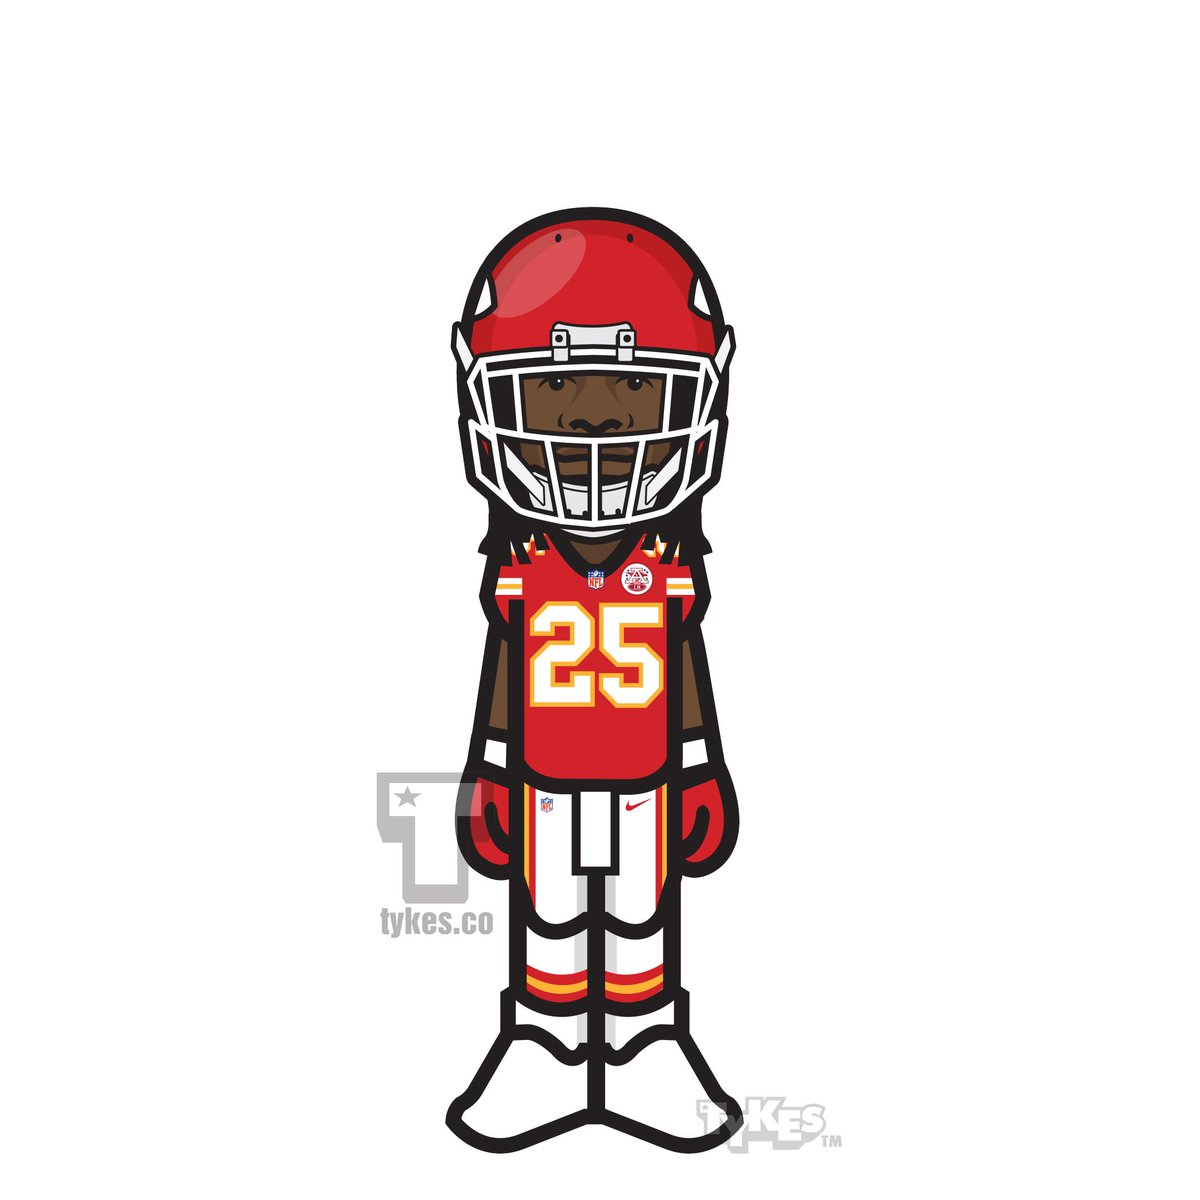 1200x1200 Tykes On Twitter Jamaal Charles Kansas City @chiefs Tyke